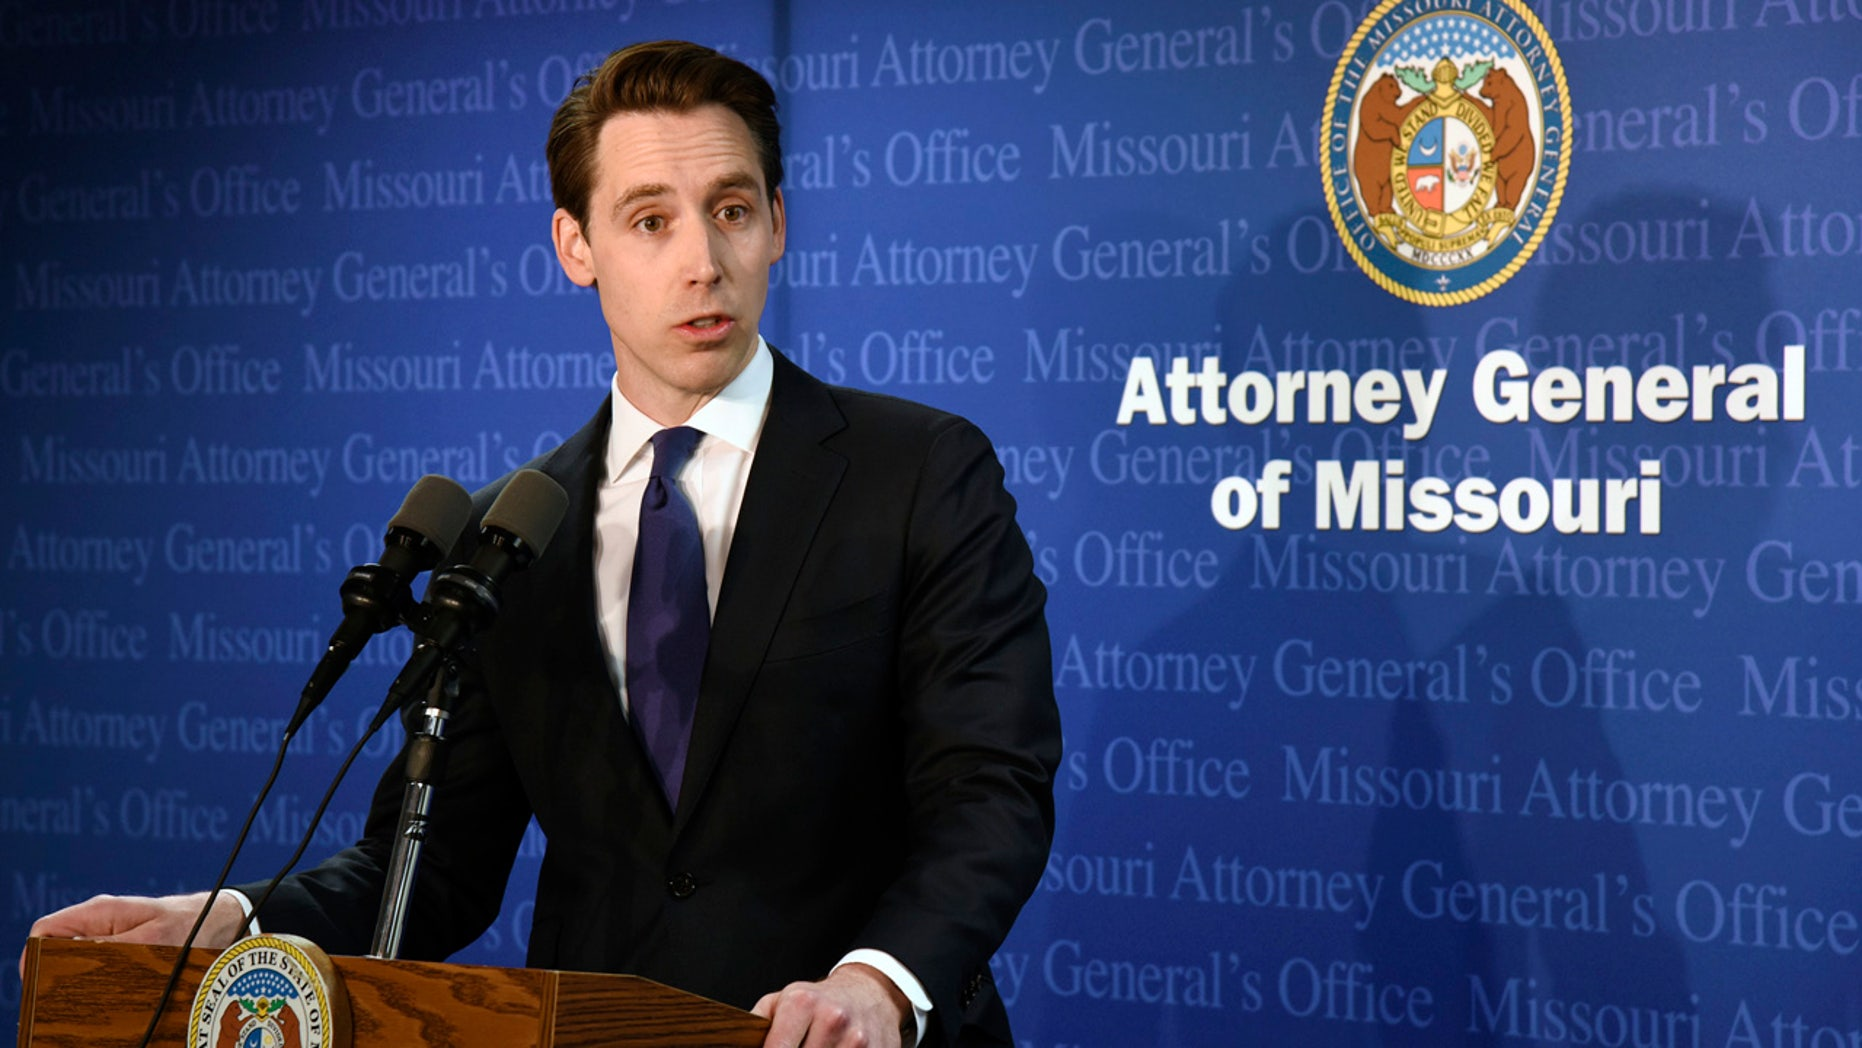 Missouri Attorney General Josh Hawley addresses reporters in Jefferson City Tuesday.